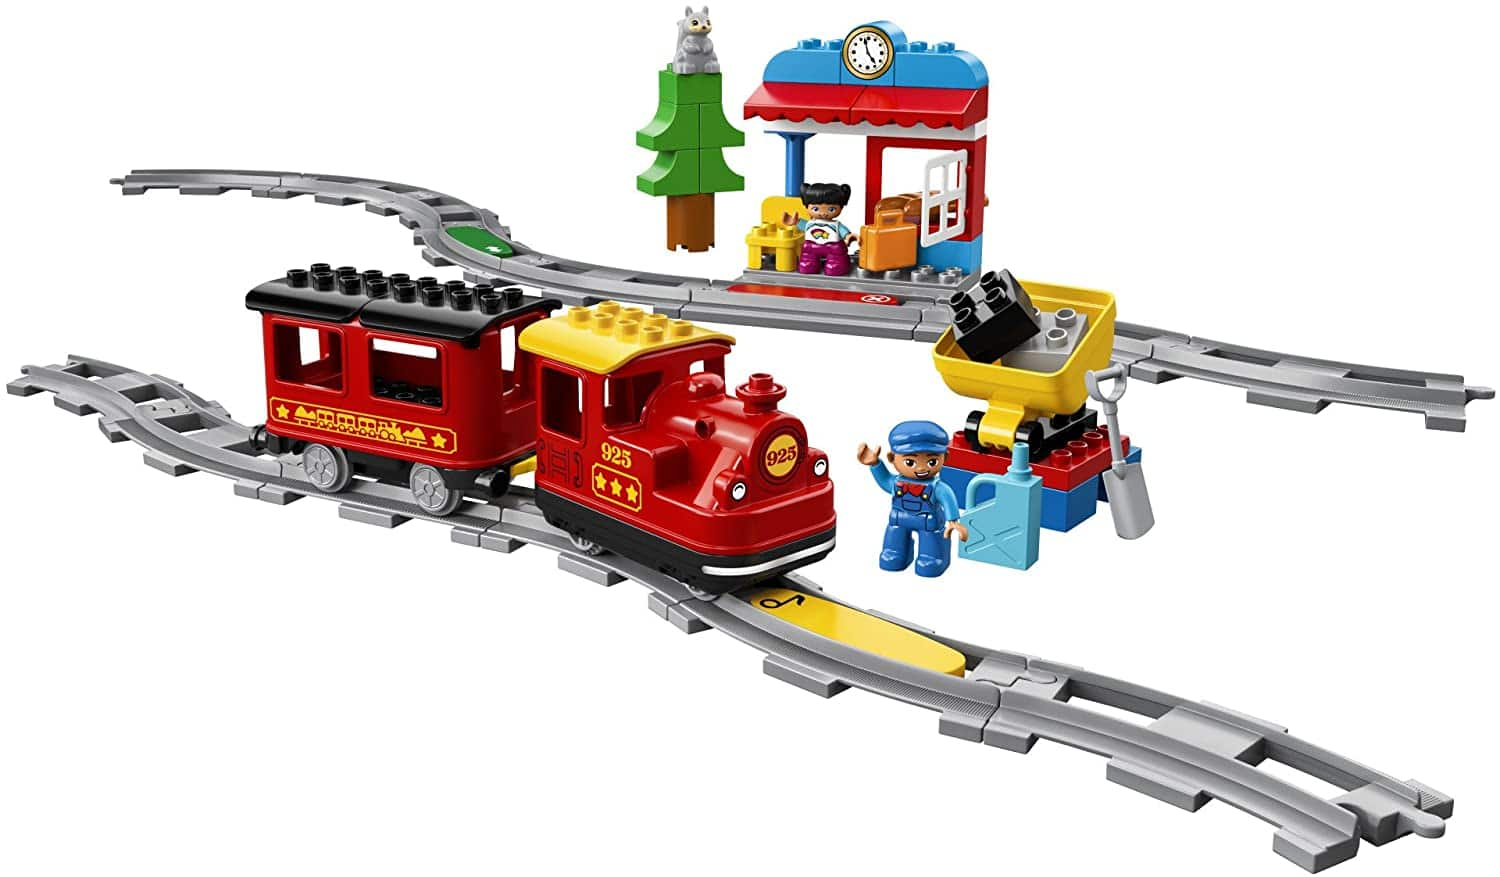 LEGO DUPLO Steam Train 10874 10% off on Amazon, track extensions too $54